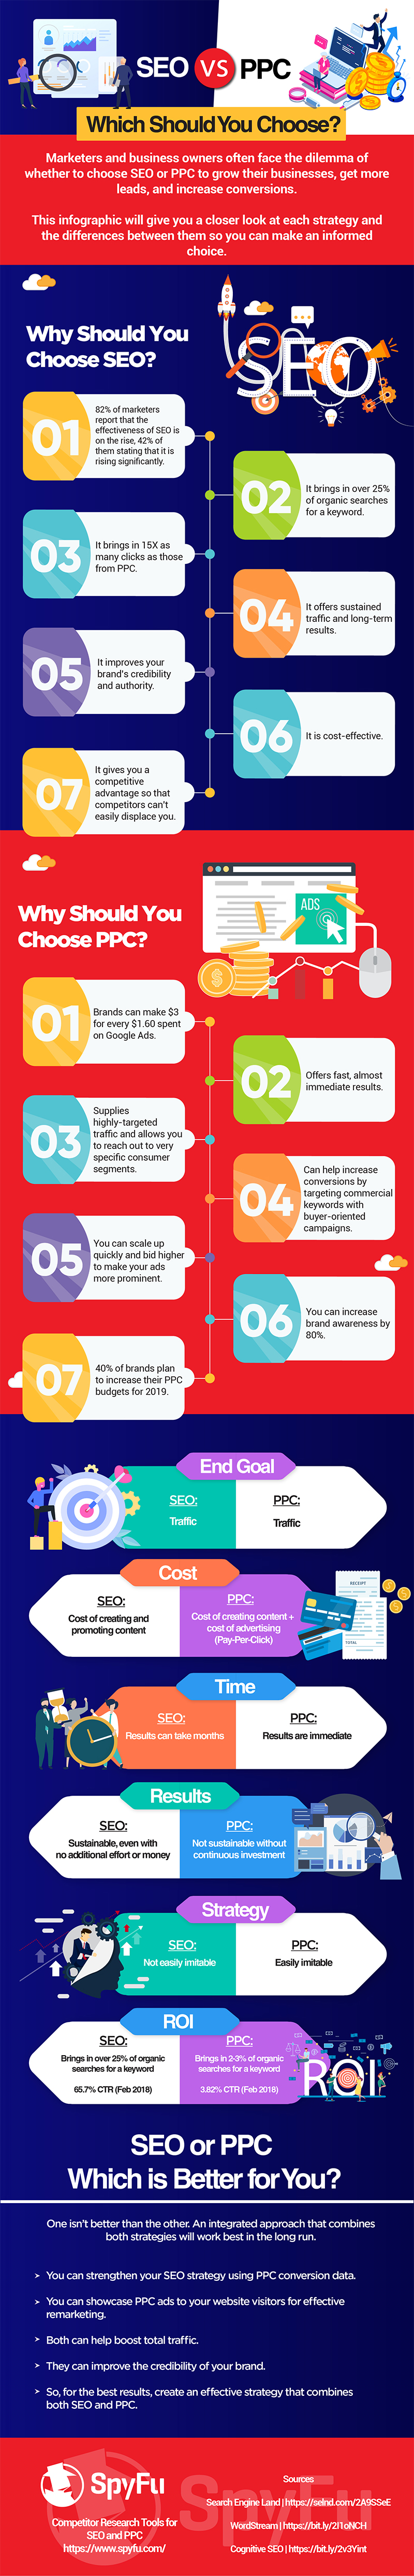 SEO v PPC: Choosing Where to Spend Your Marketing Budget [Infographic]